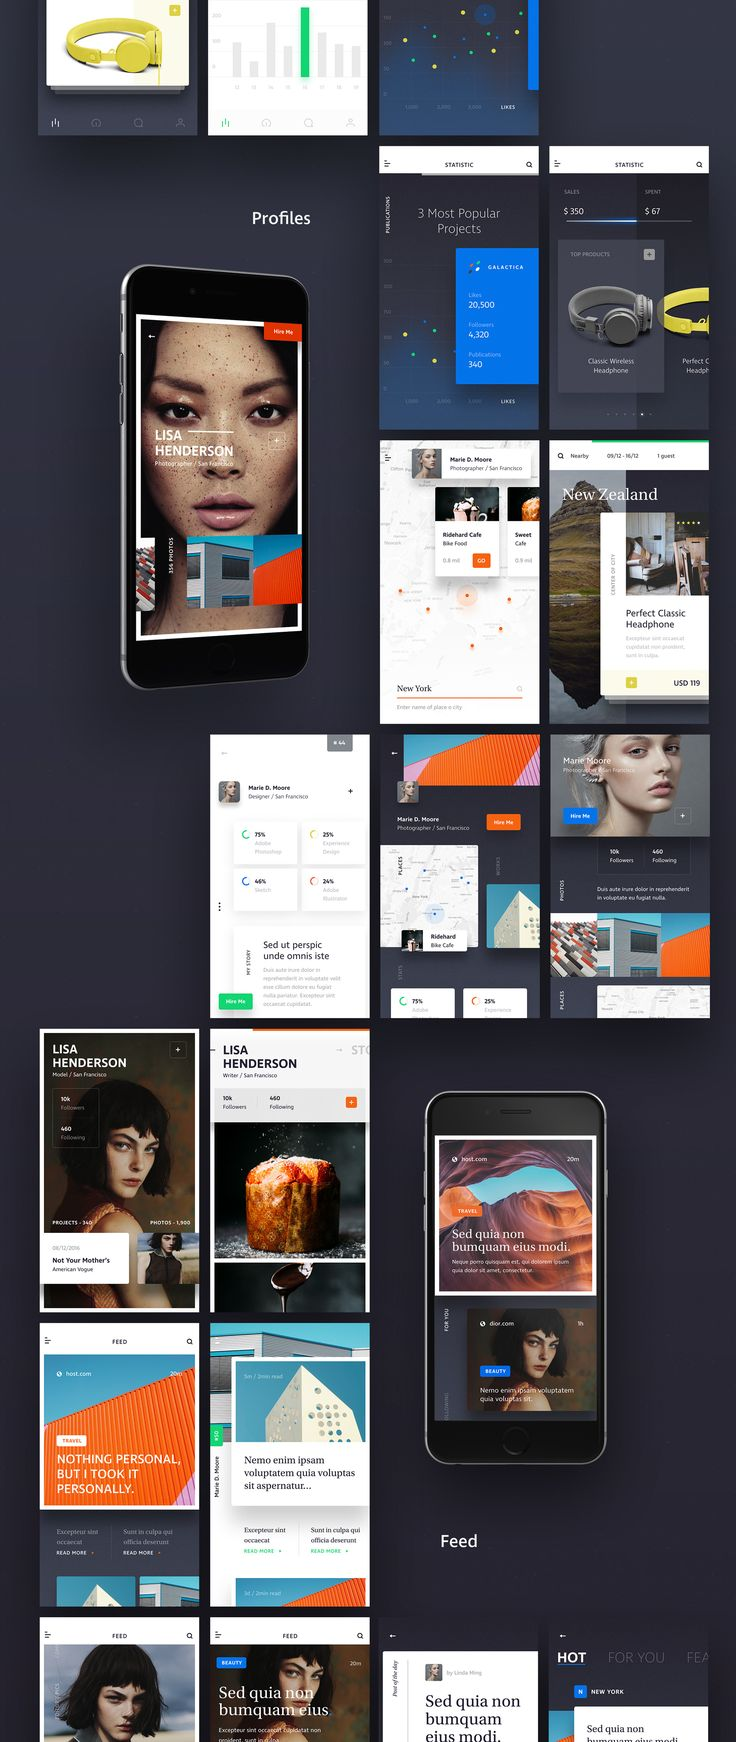 Introducing XD. A sleek, crisp new mobile iOS based UI kit built in Adobe XD. XD includes 39 mobile screens ranging over 5 categories; Walkthroughs, Feed, Profile, Statistics & Ecommerce.